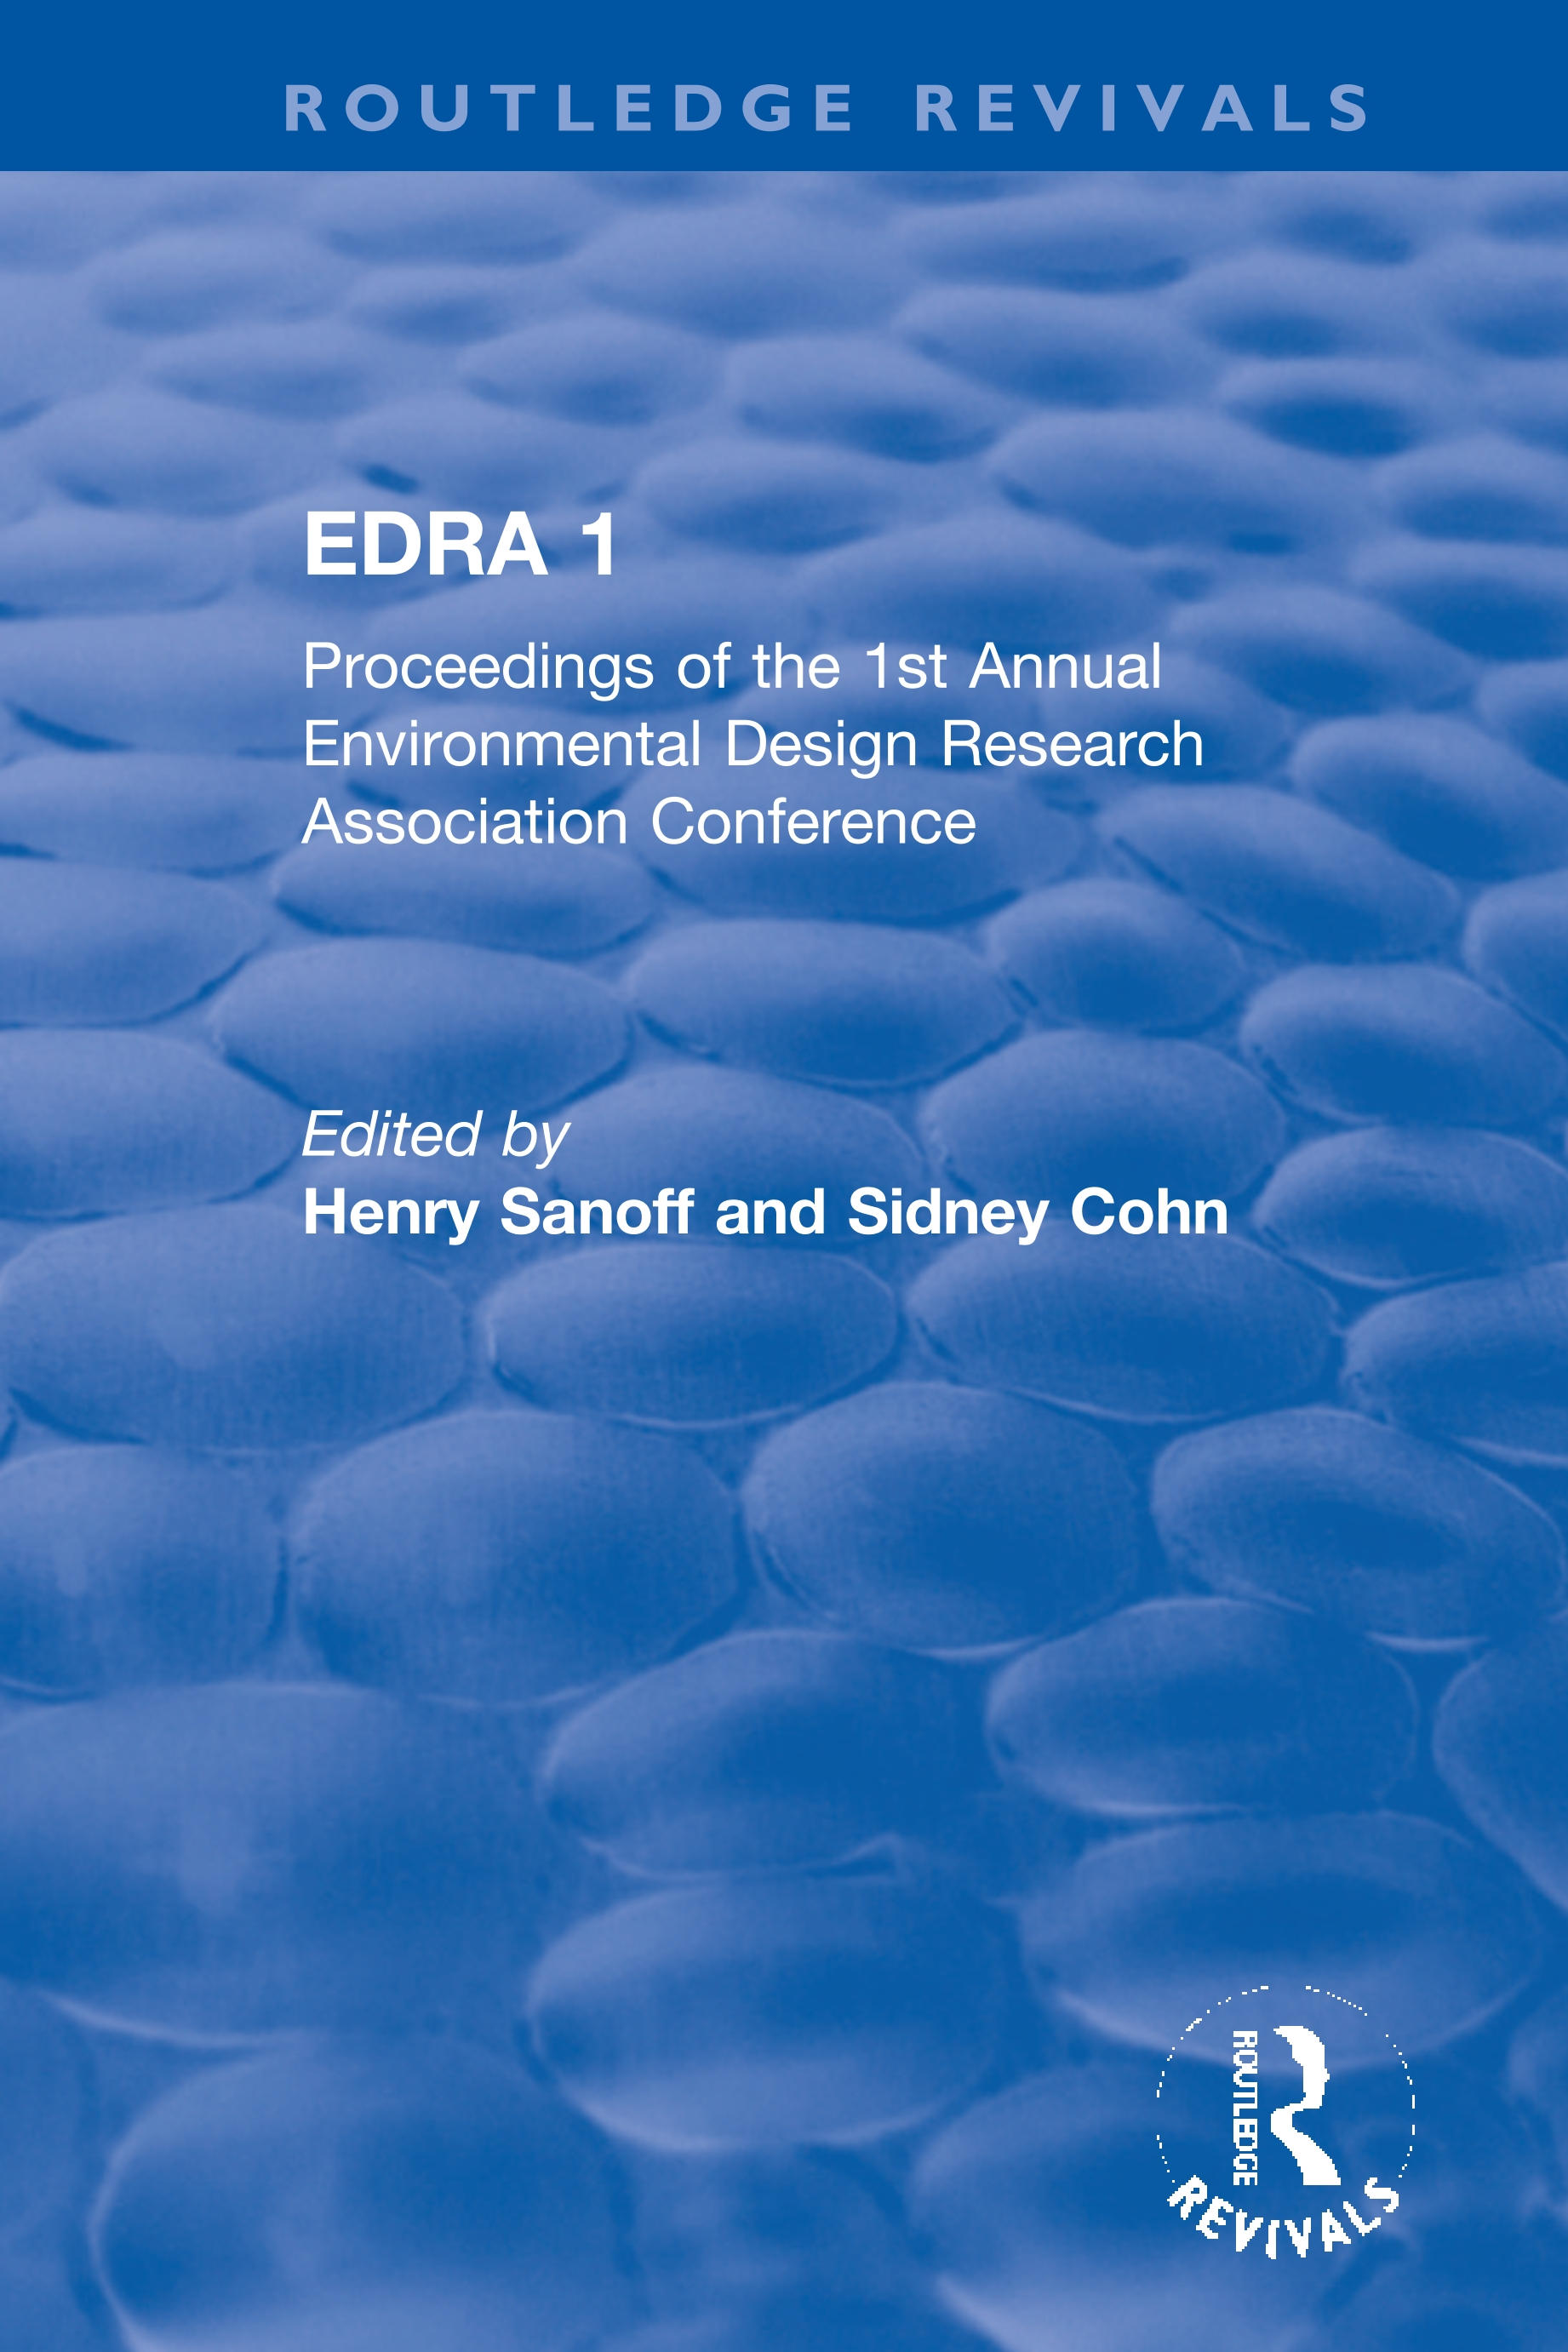 EDRA 1: Proceedings of the 1st Annual Environmental Design Research Association Conference book cover